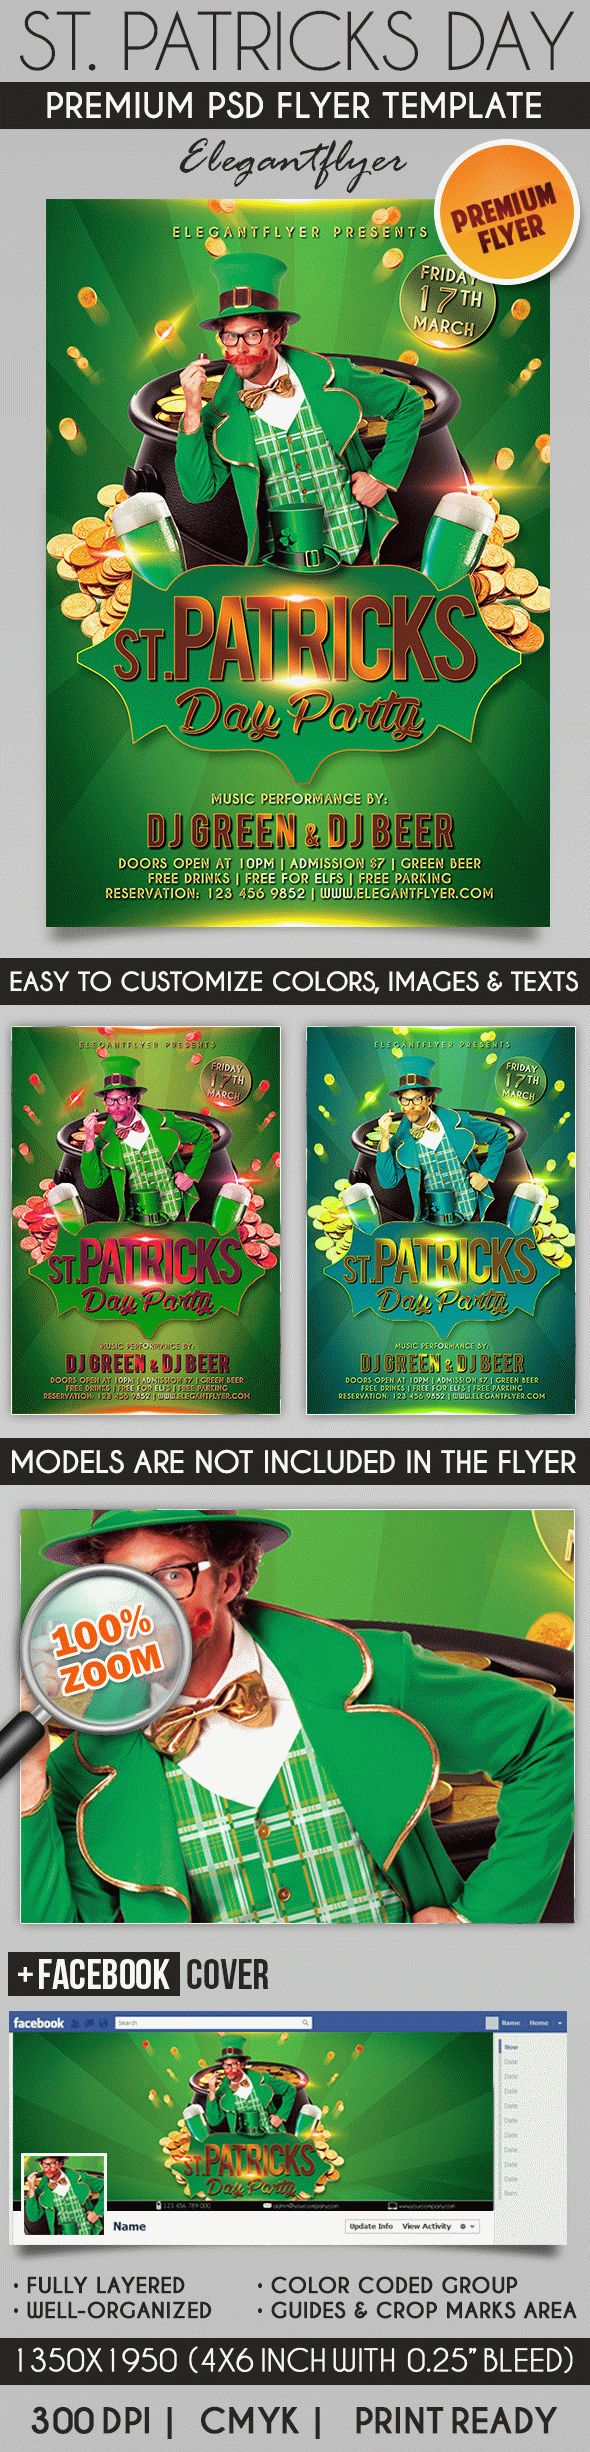 template for st  patricks day parade  u2013 by elegantflyer